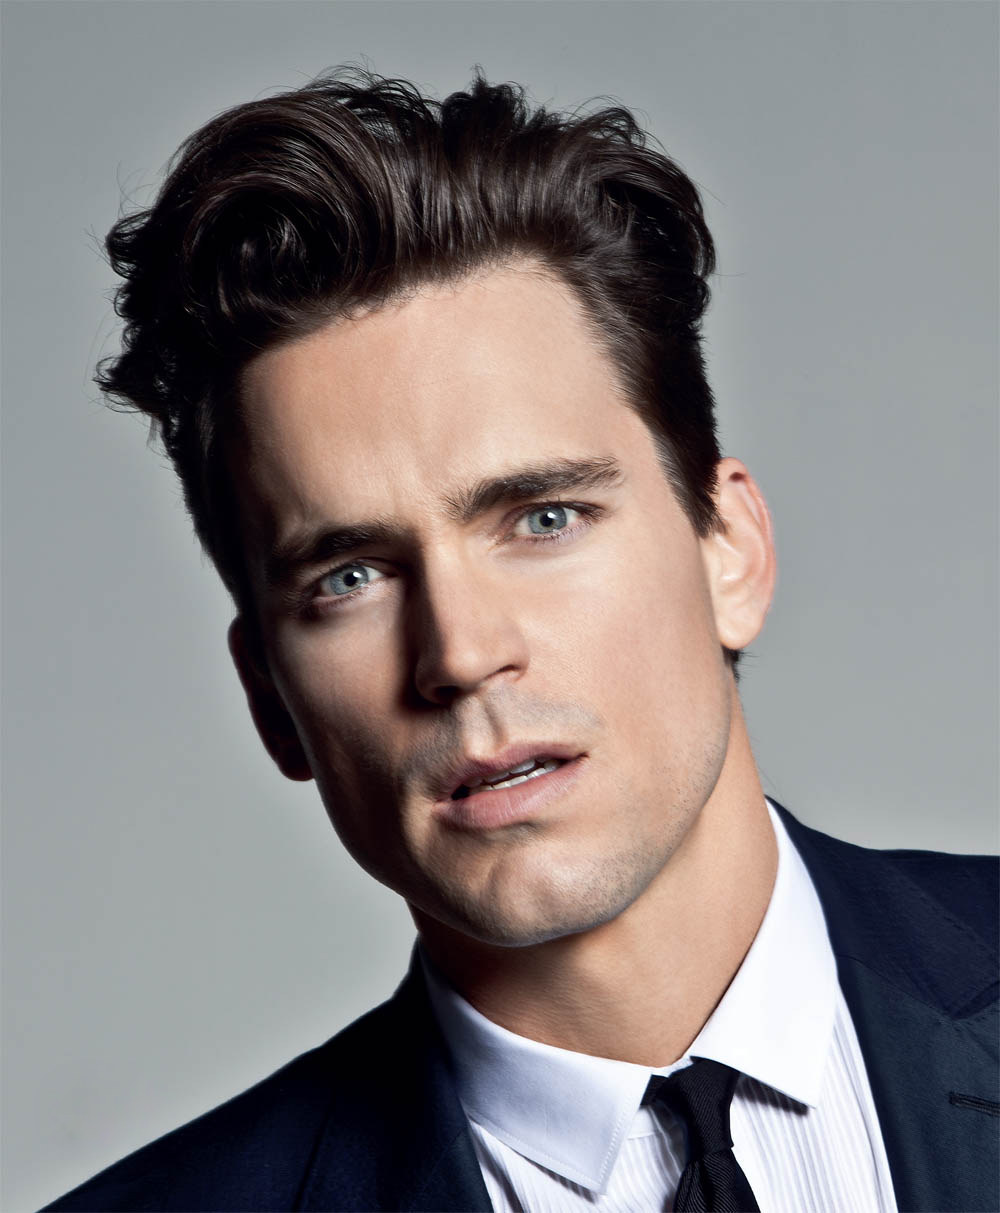 MOST BEAUTIFUL MEN: MATT BOMER